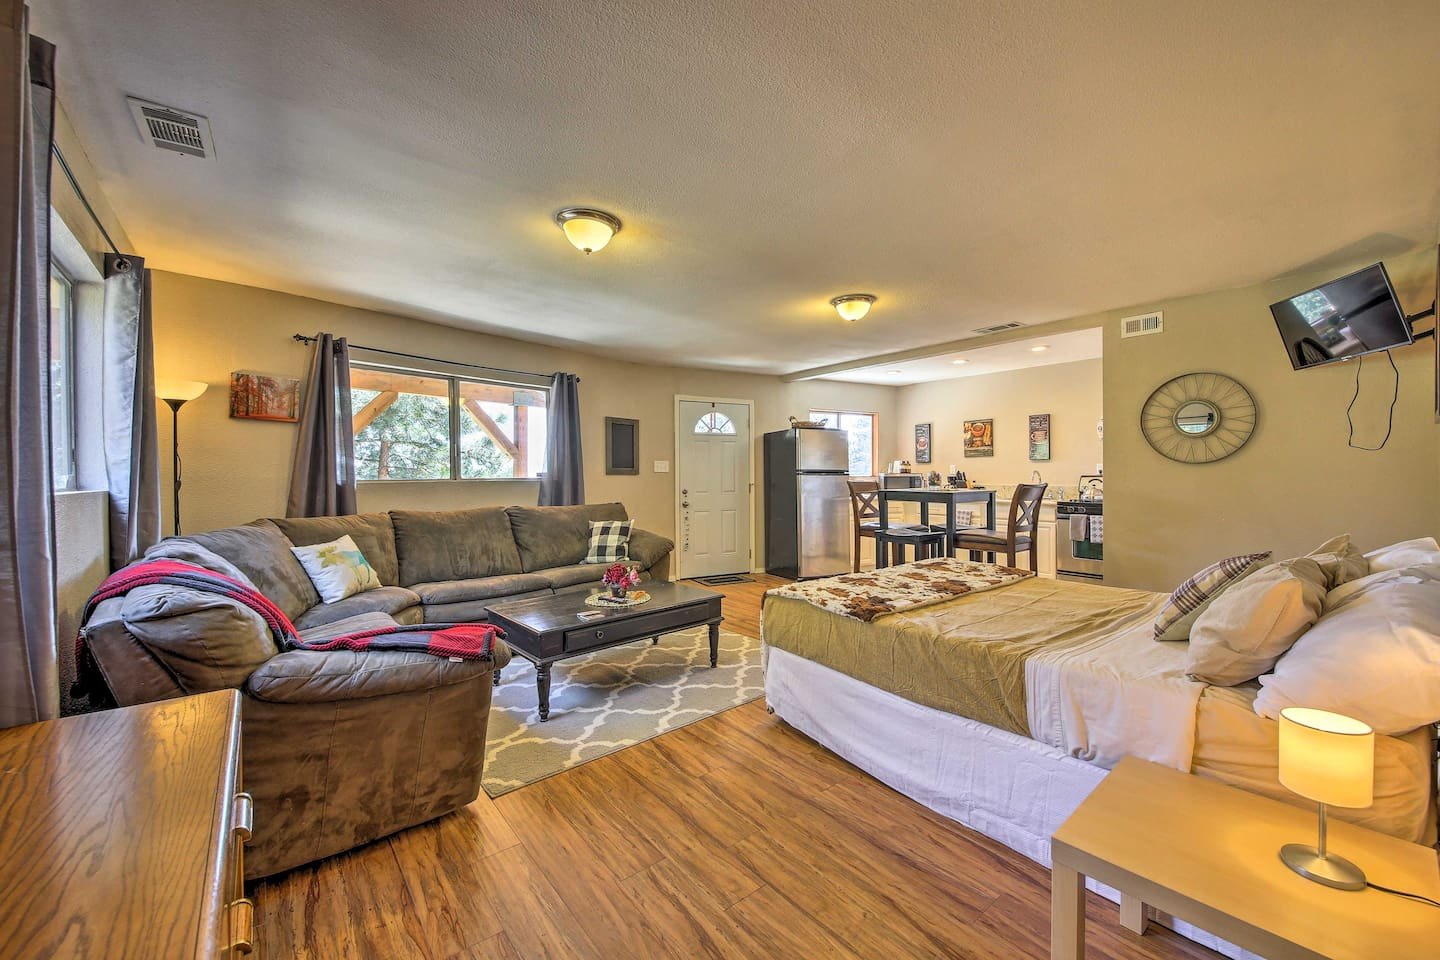 A relaxing Running Springs retreat awaits you at this vacation rental studio!